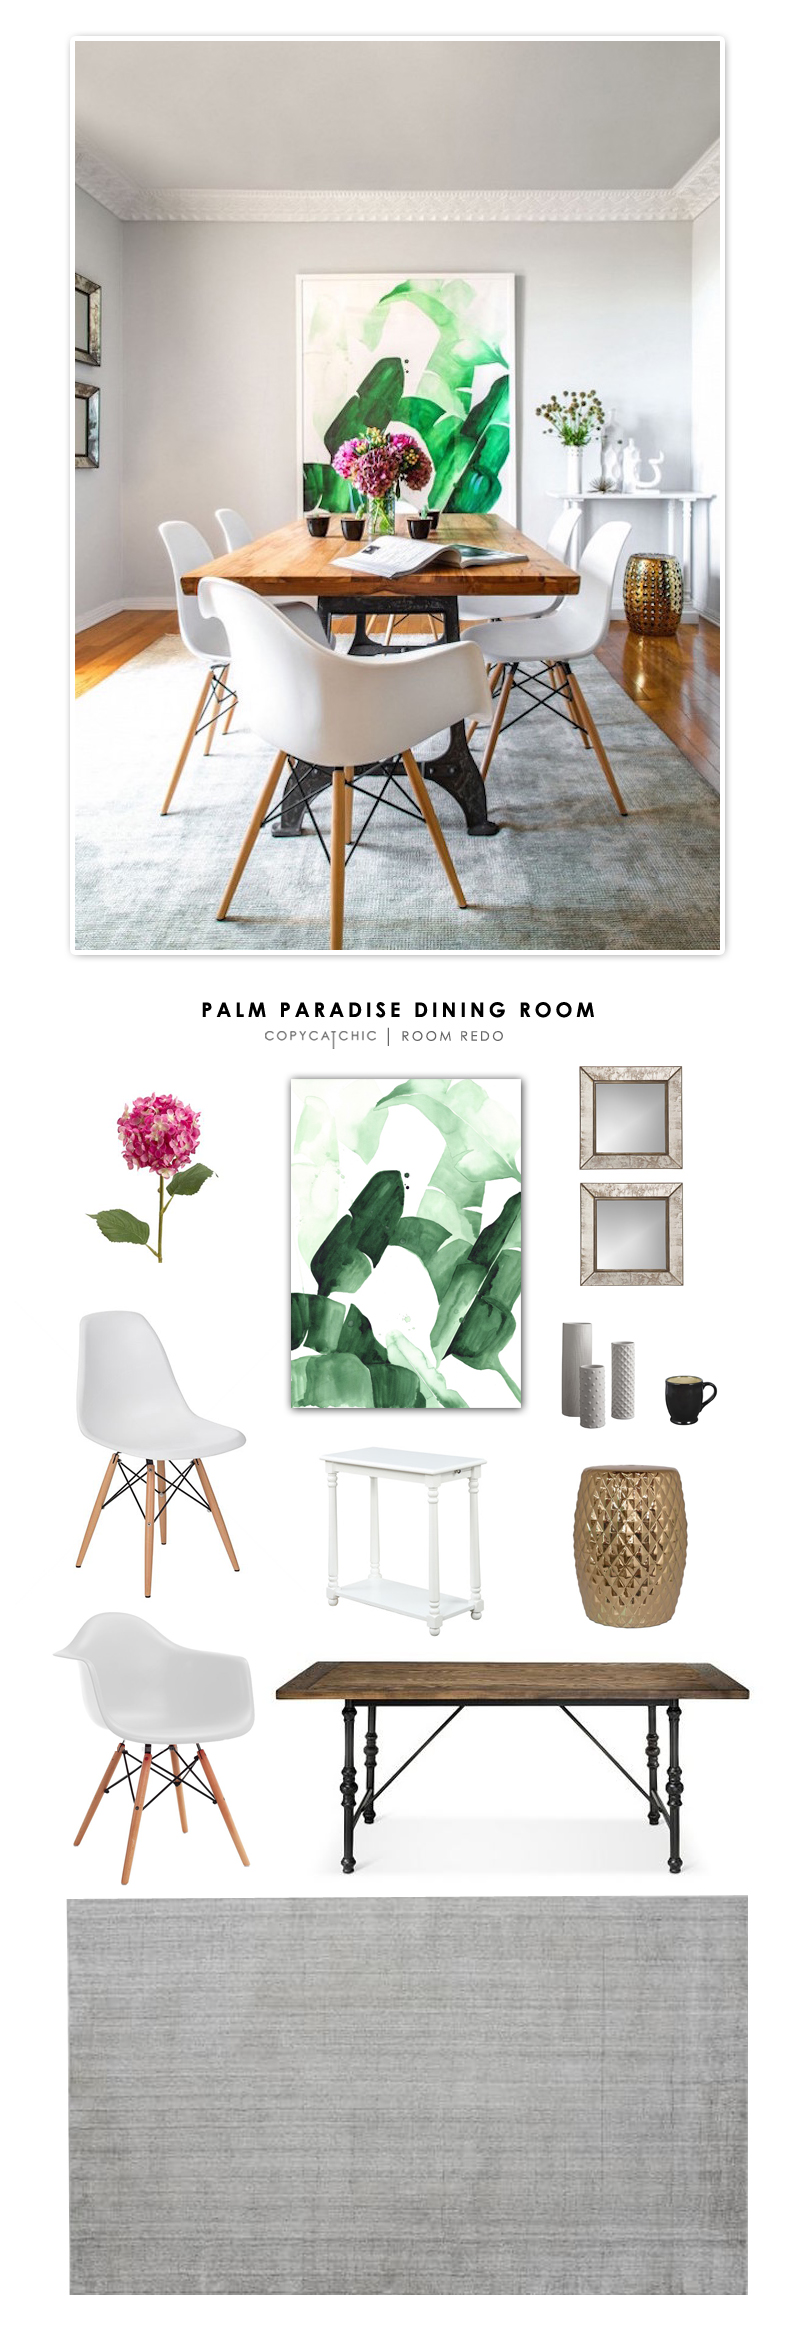 Jenny Bernheim's Palm Paradise Dining Room recreated for less by Copy Cat Chic.